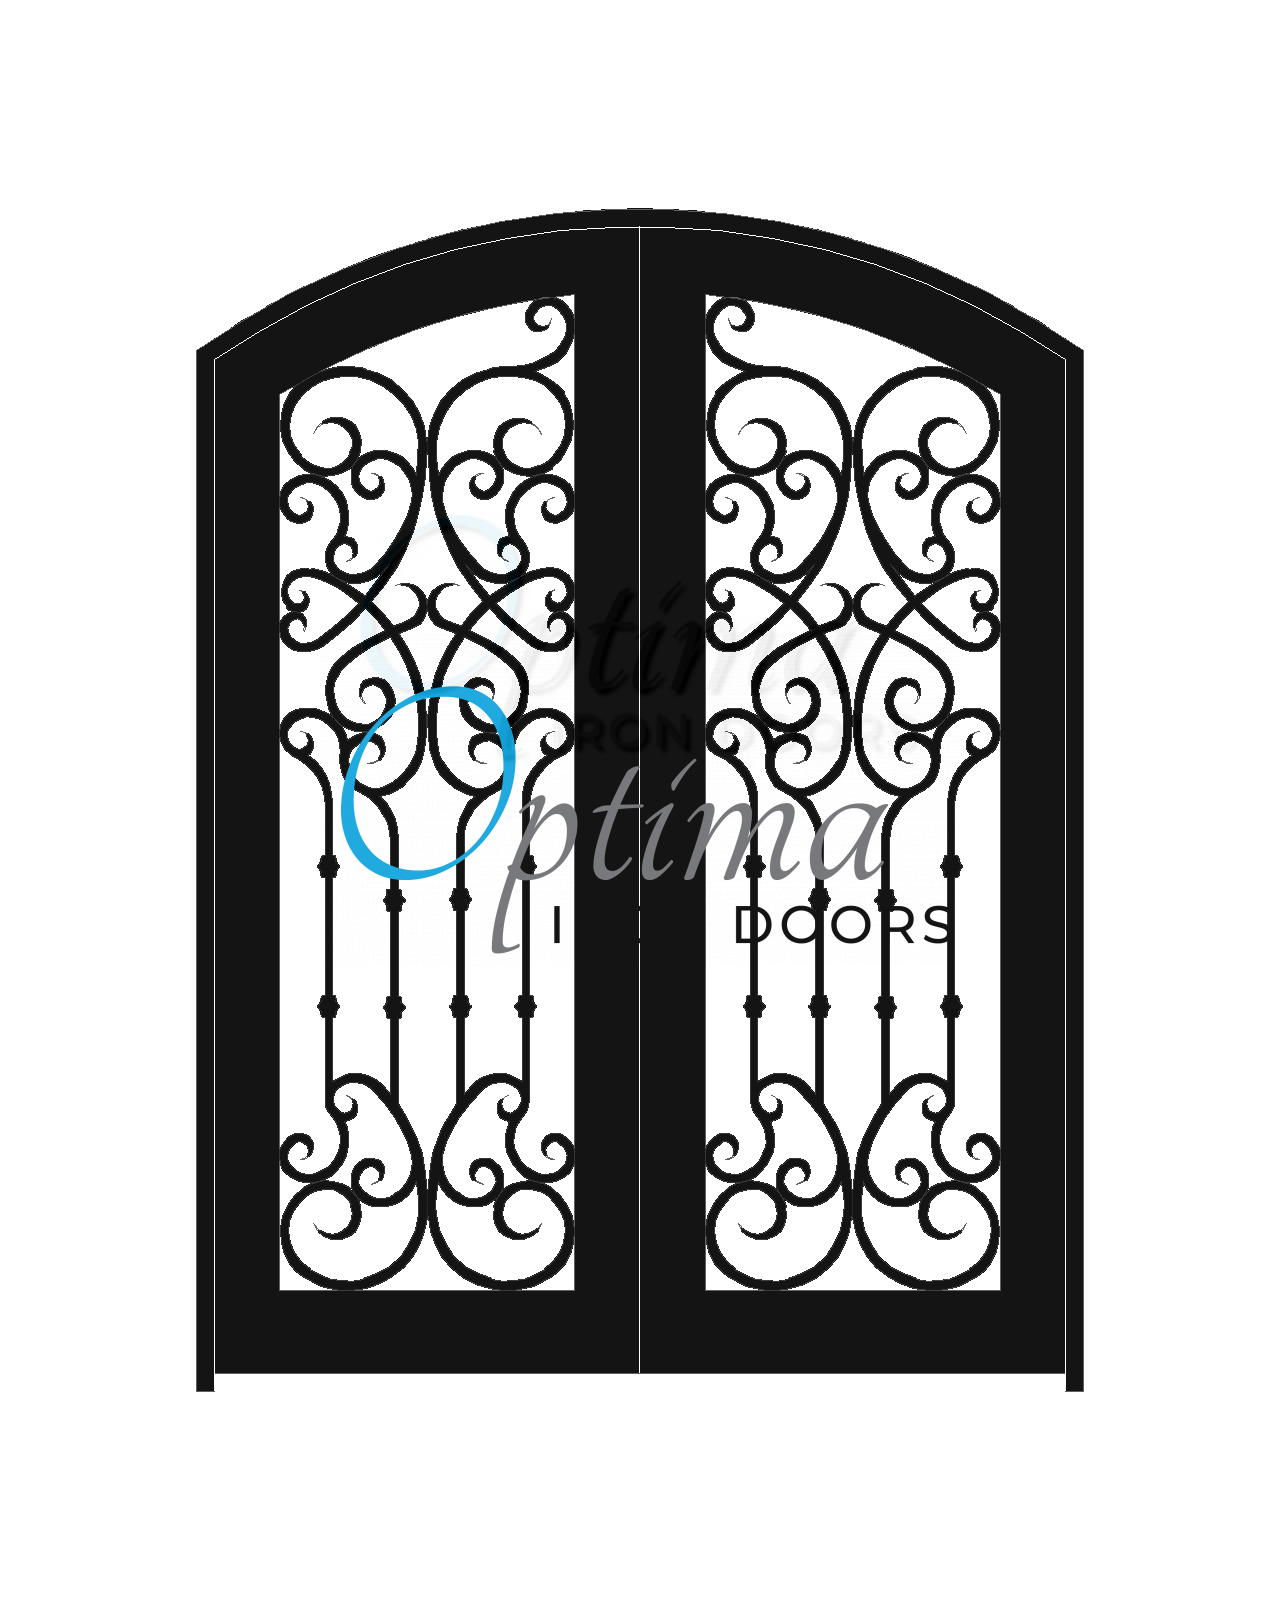 Standard Profile Arch Top Full Lite Decorative Glass Double Iron Door - CHLOE OID-6080-CHLAT